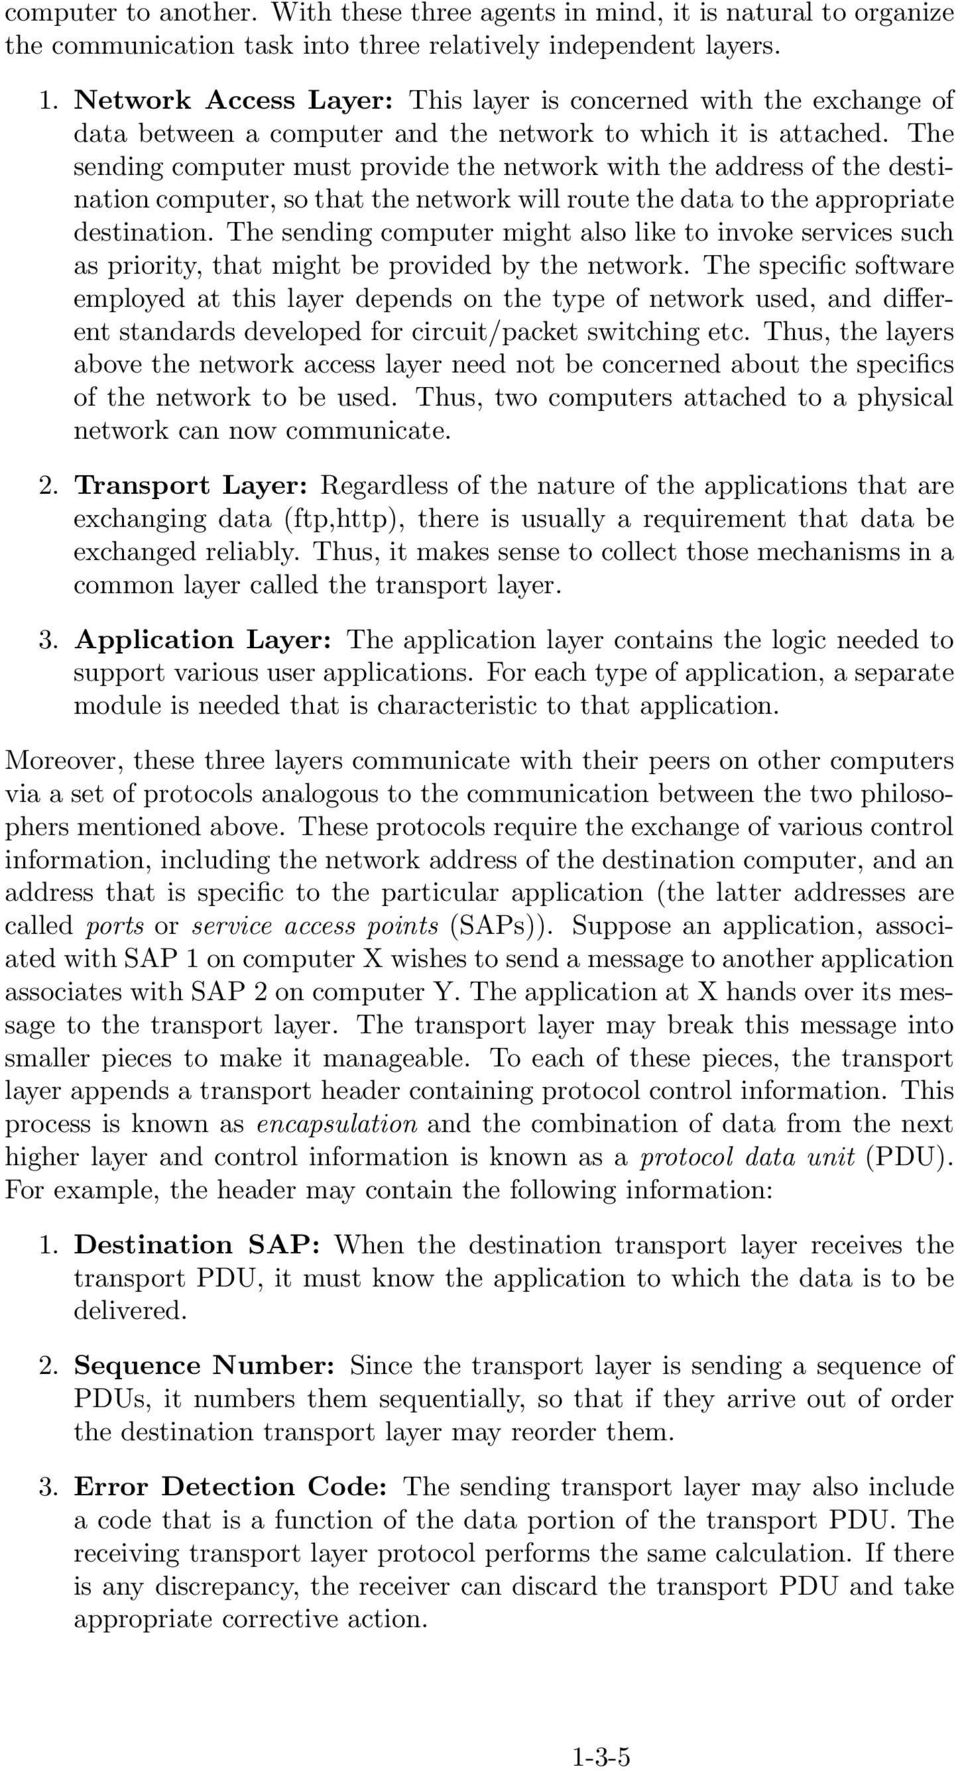 The sending computer must provide the network with the address of the destination computer, so that the network will route the data to the appropriate destination.